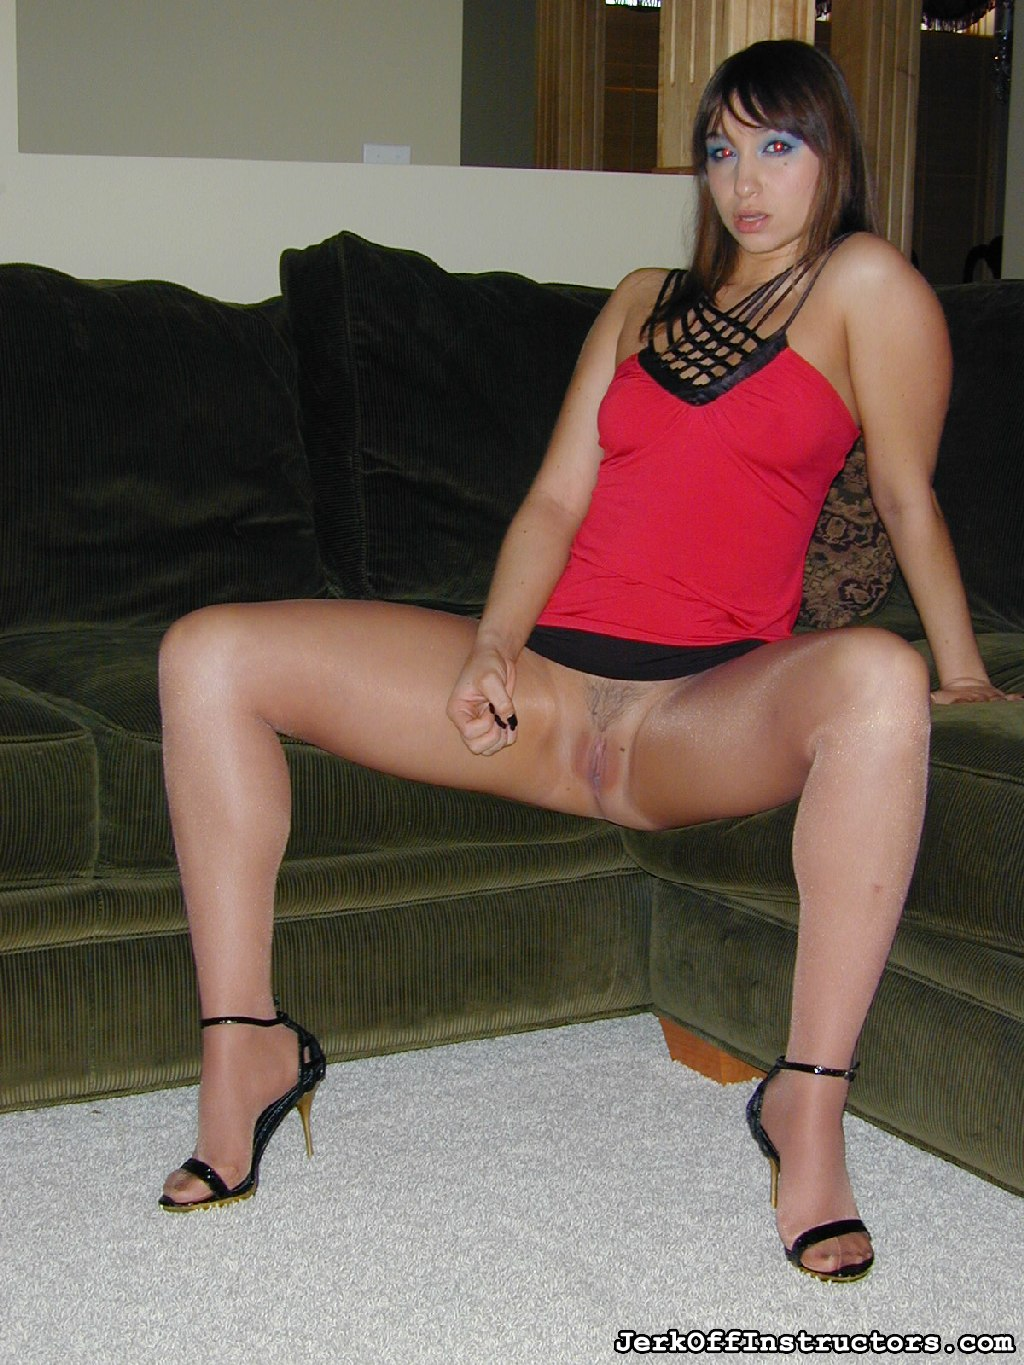 The sexy louisa lanewood. Louisa Lanewood is here to make sure you please yourself today with the best jerk off instruction around town. She is so seductive and horny in her red dress and nude sheer to waist pantyhose.